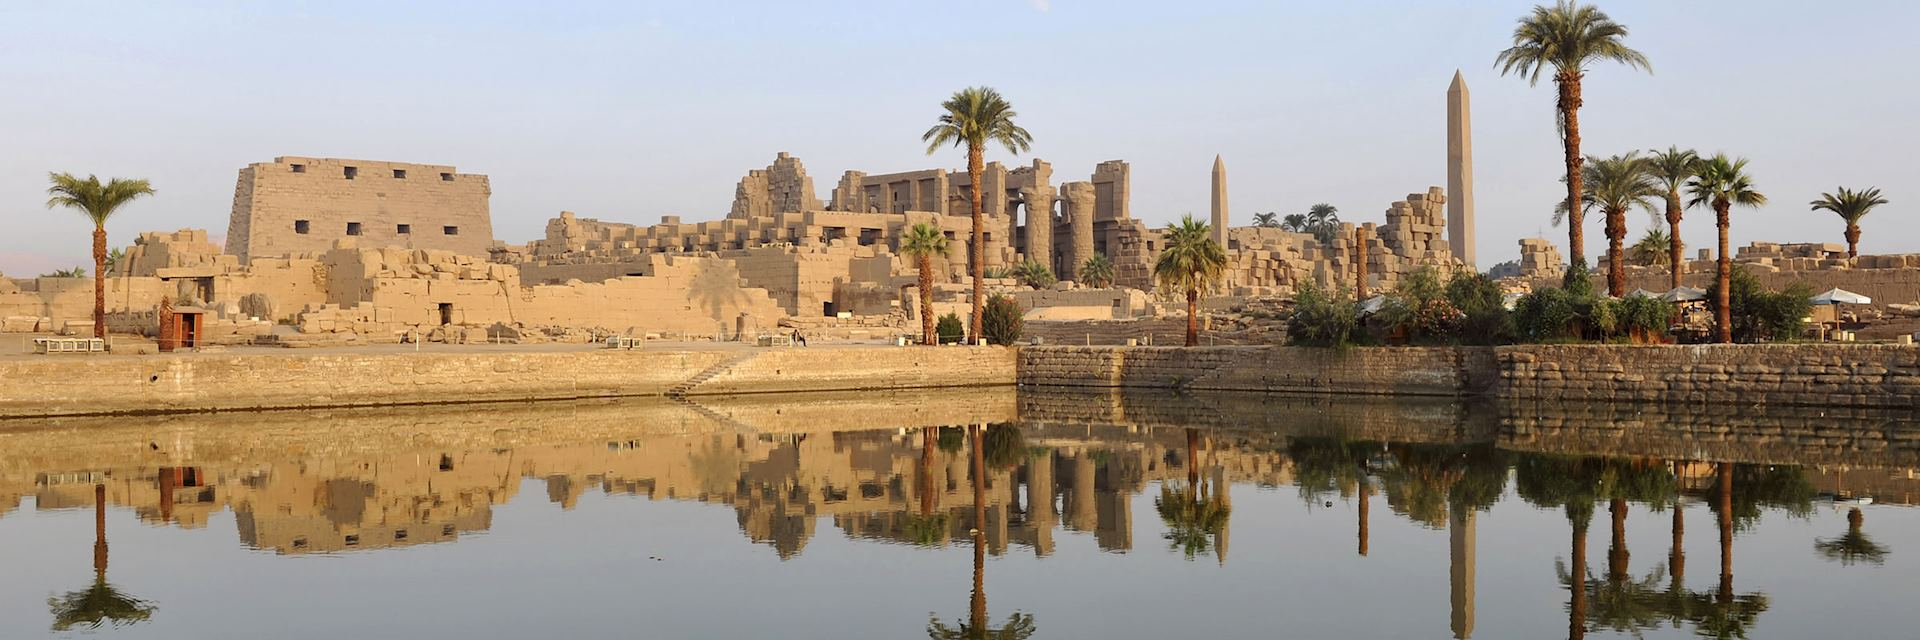 Karnak Temple at dawn